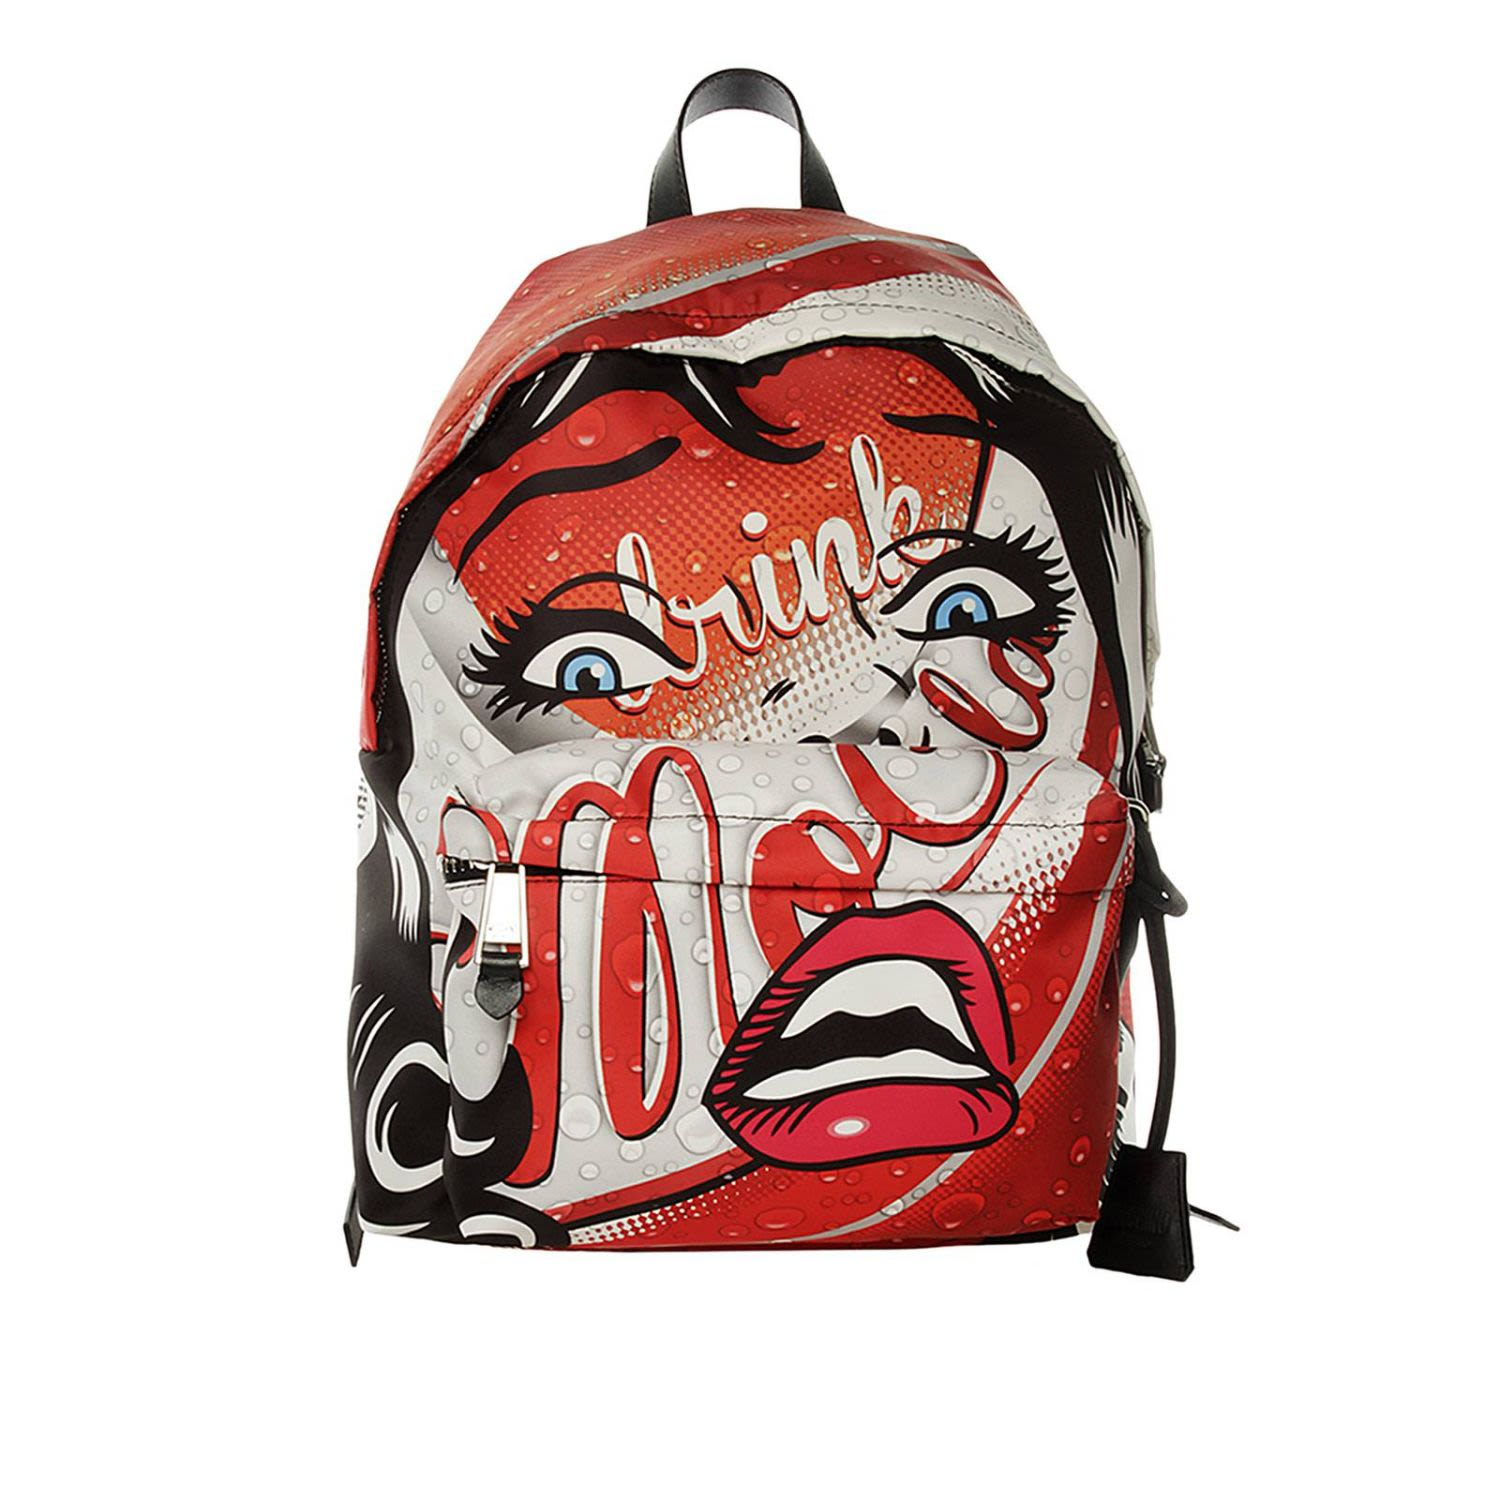 moschino -  Couture Backpack Backpack eyes Capsule Collection In Cotton With  Drink Print